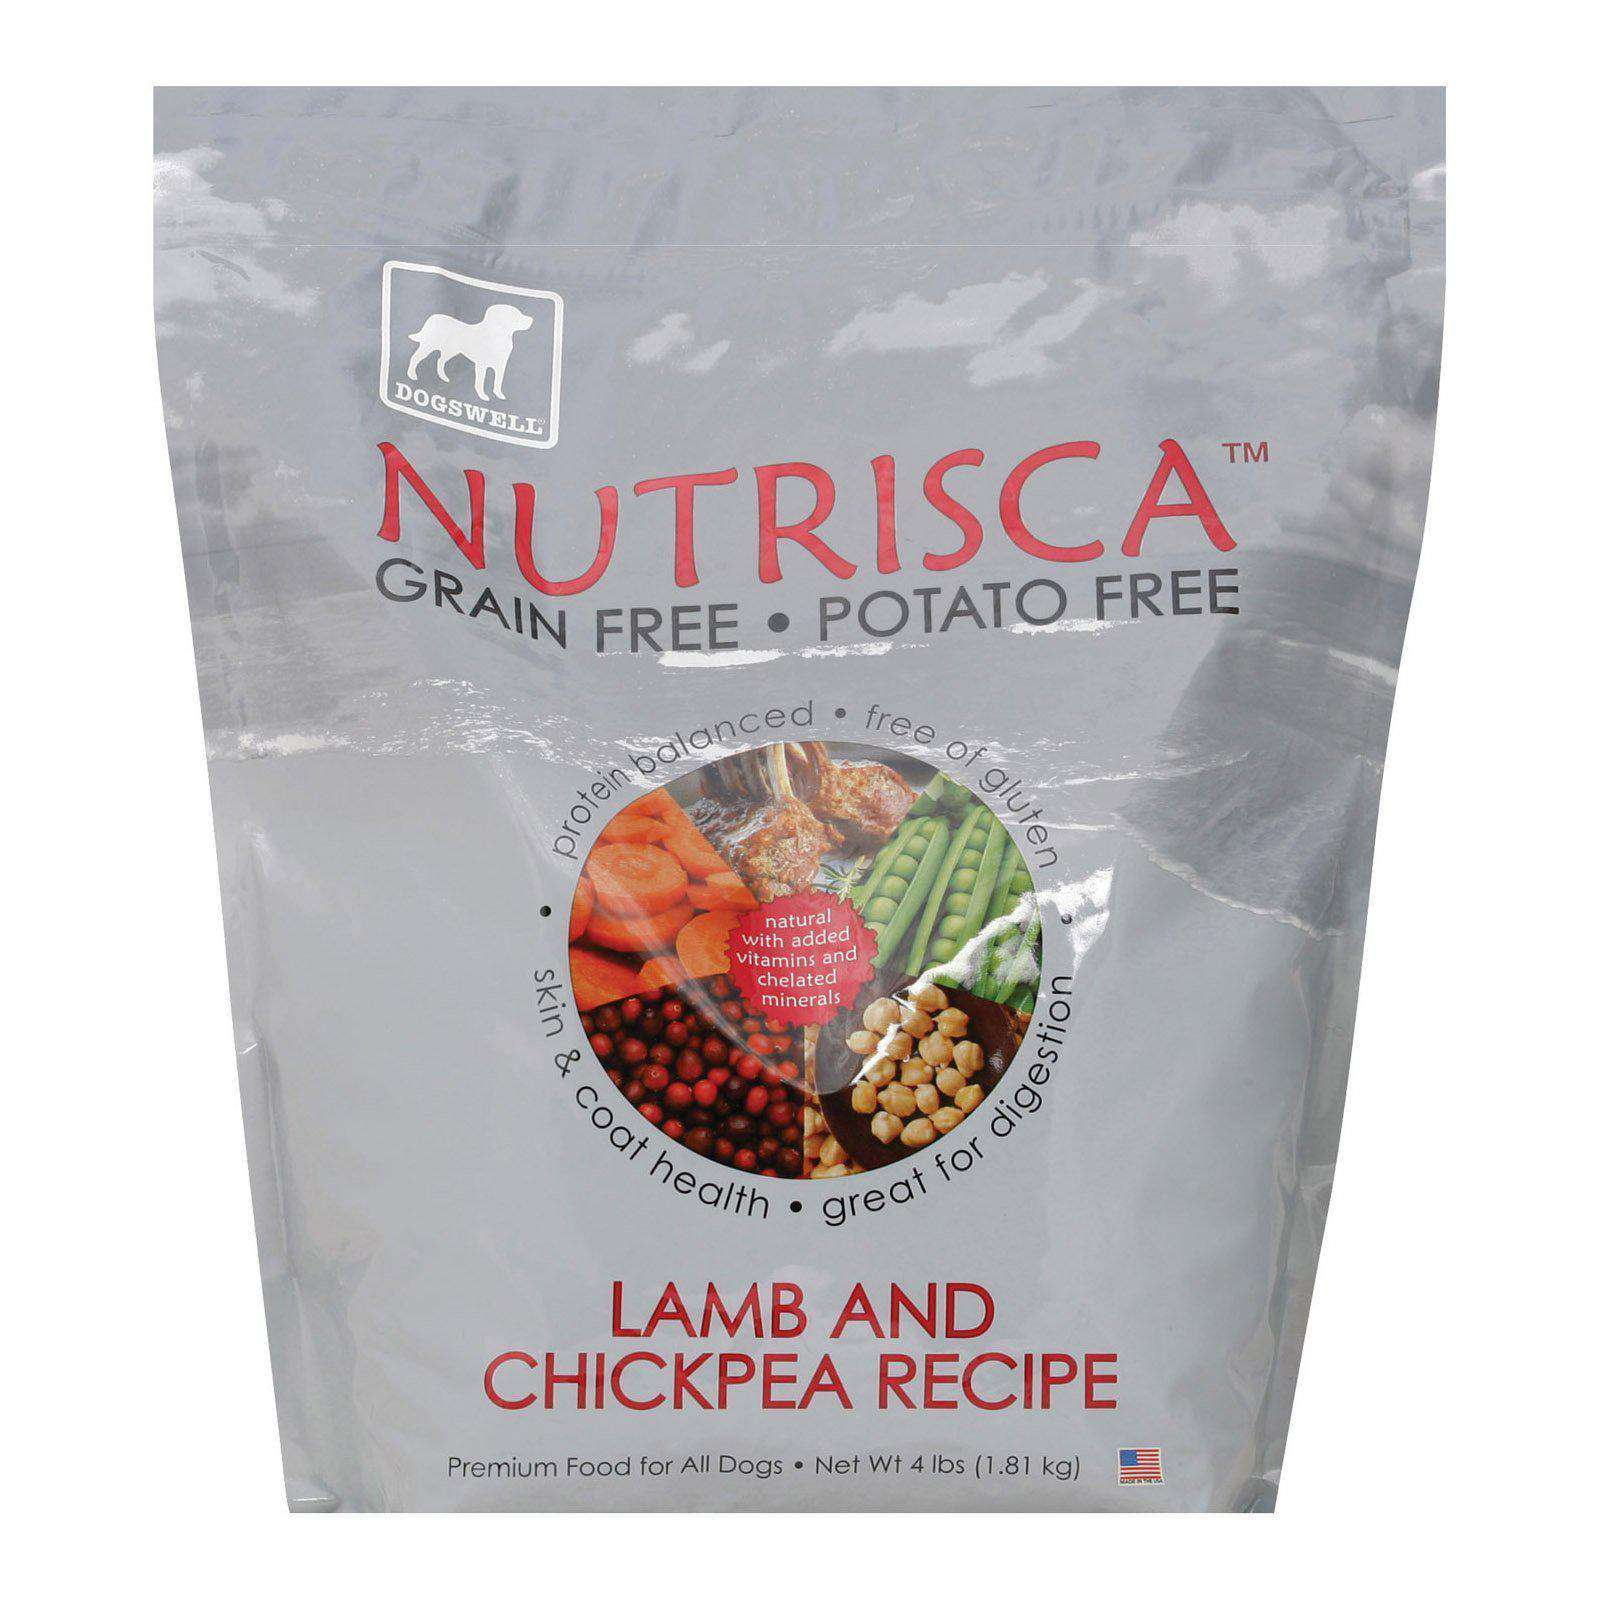 Dogs Well Nutrisca Lamb And Chickpea Dog Food - Case Of 6 - 4 Lb.-Dogswell-DirtyFurClothing